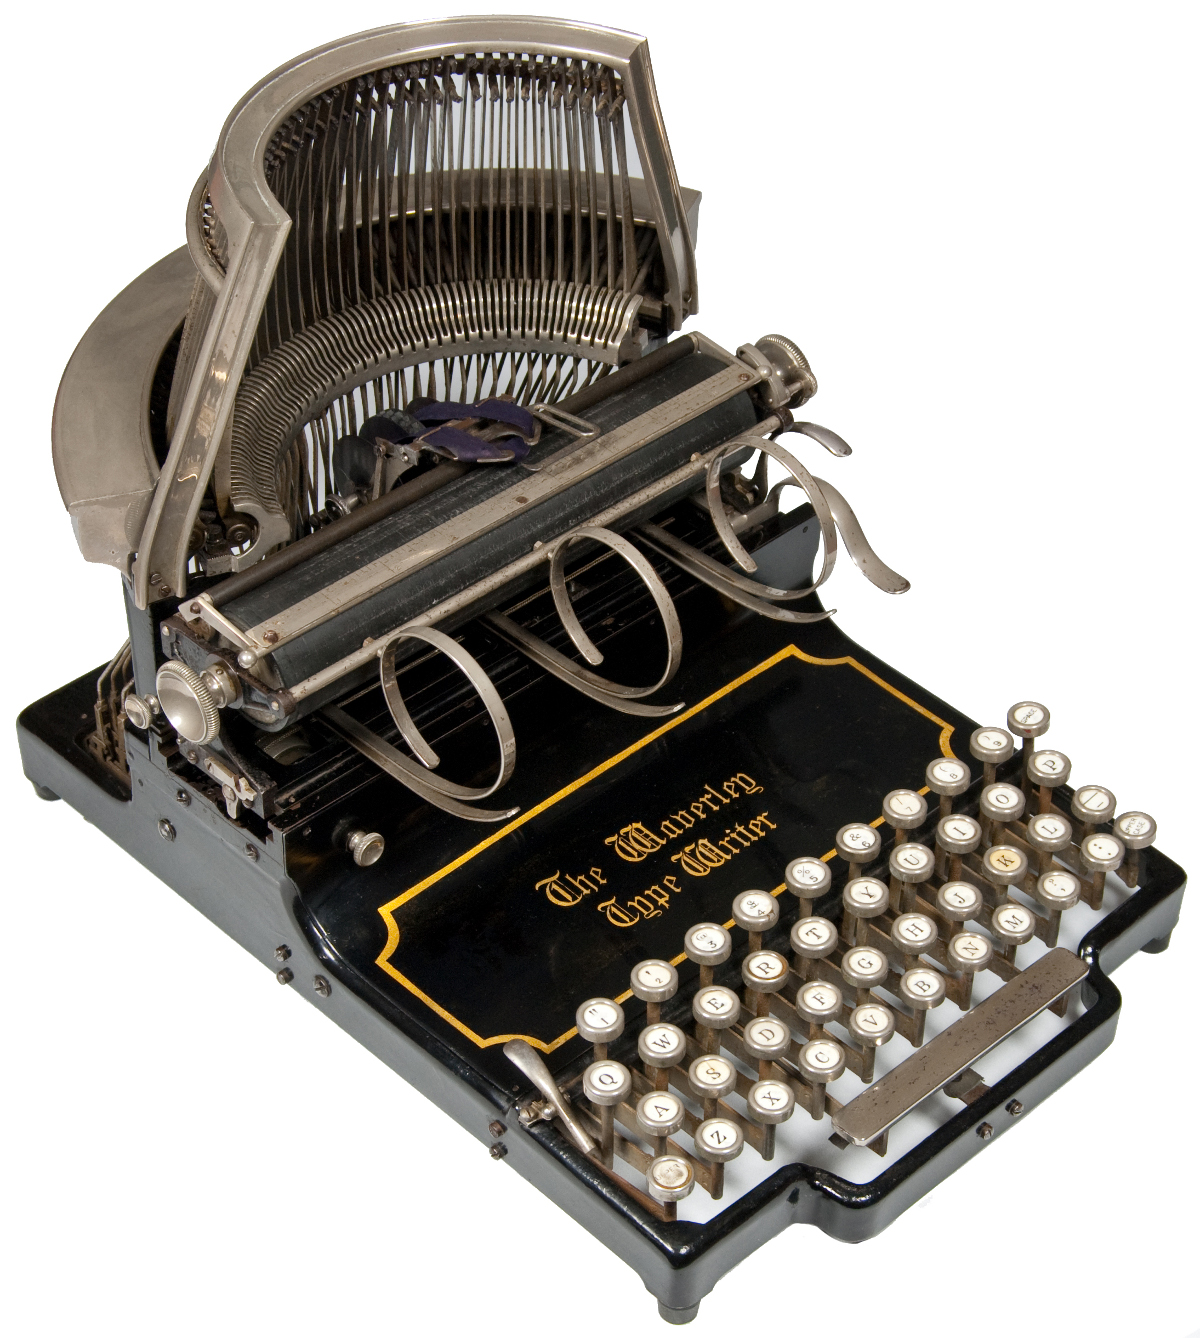 waverley-typewriter